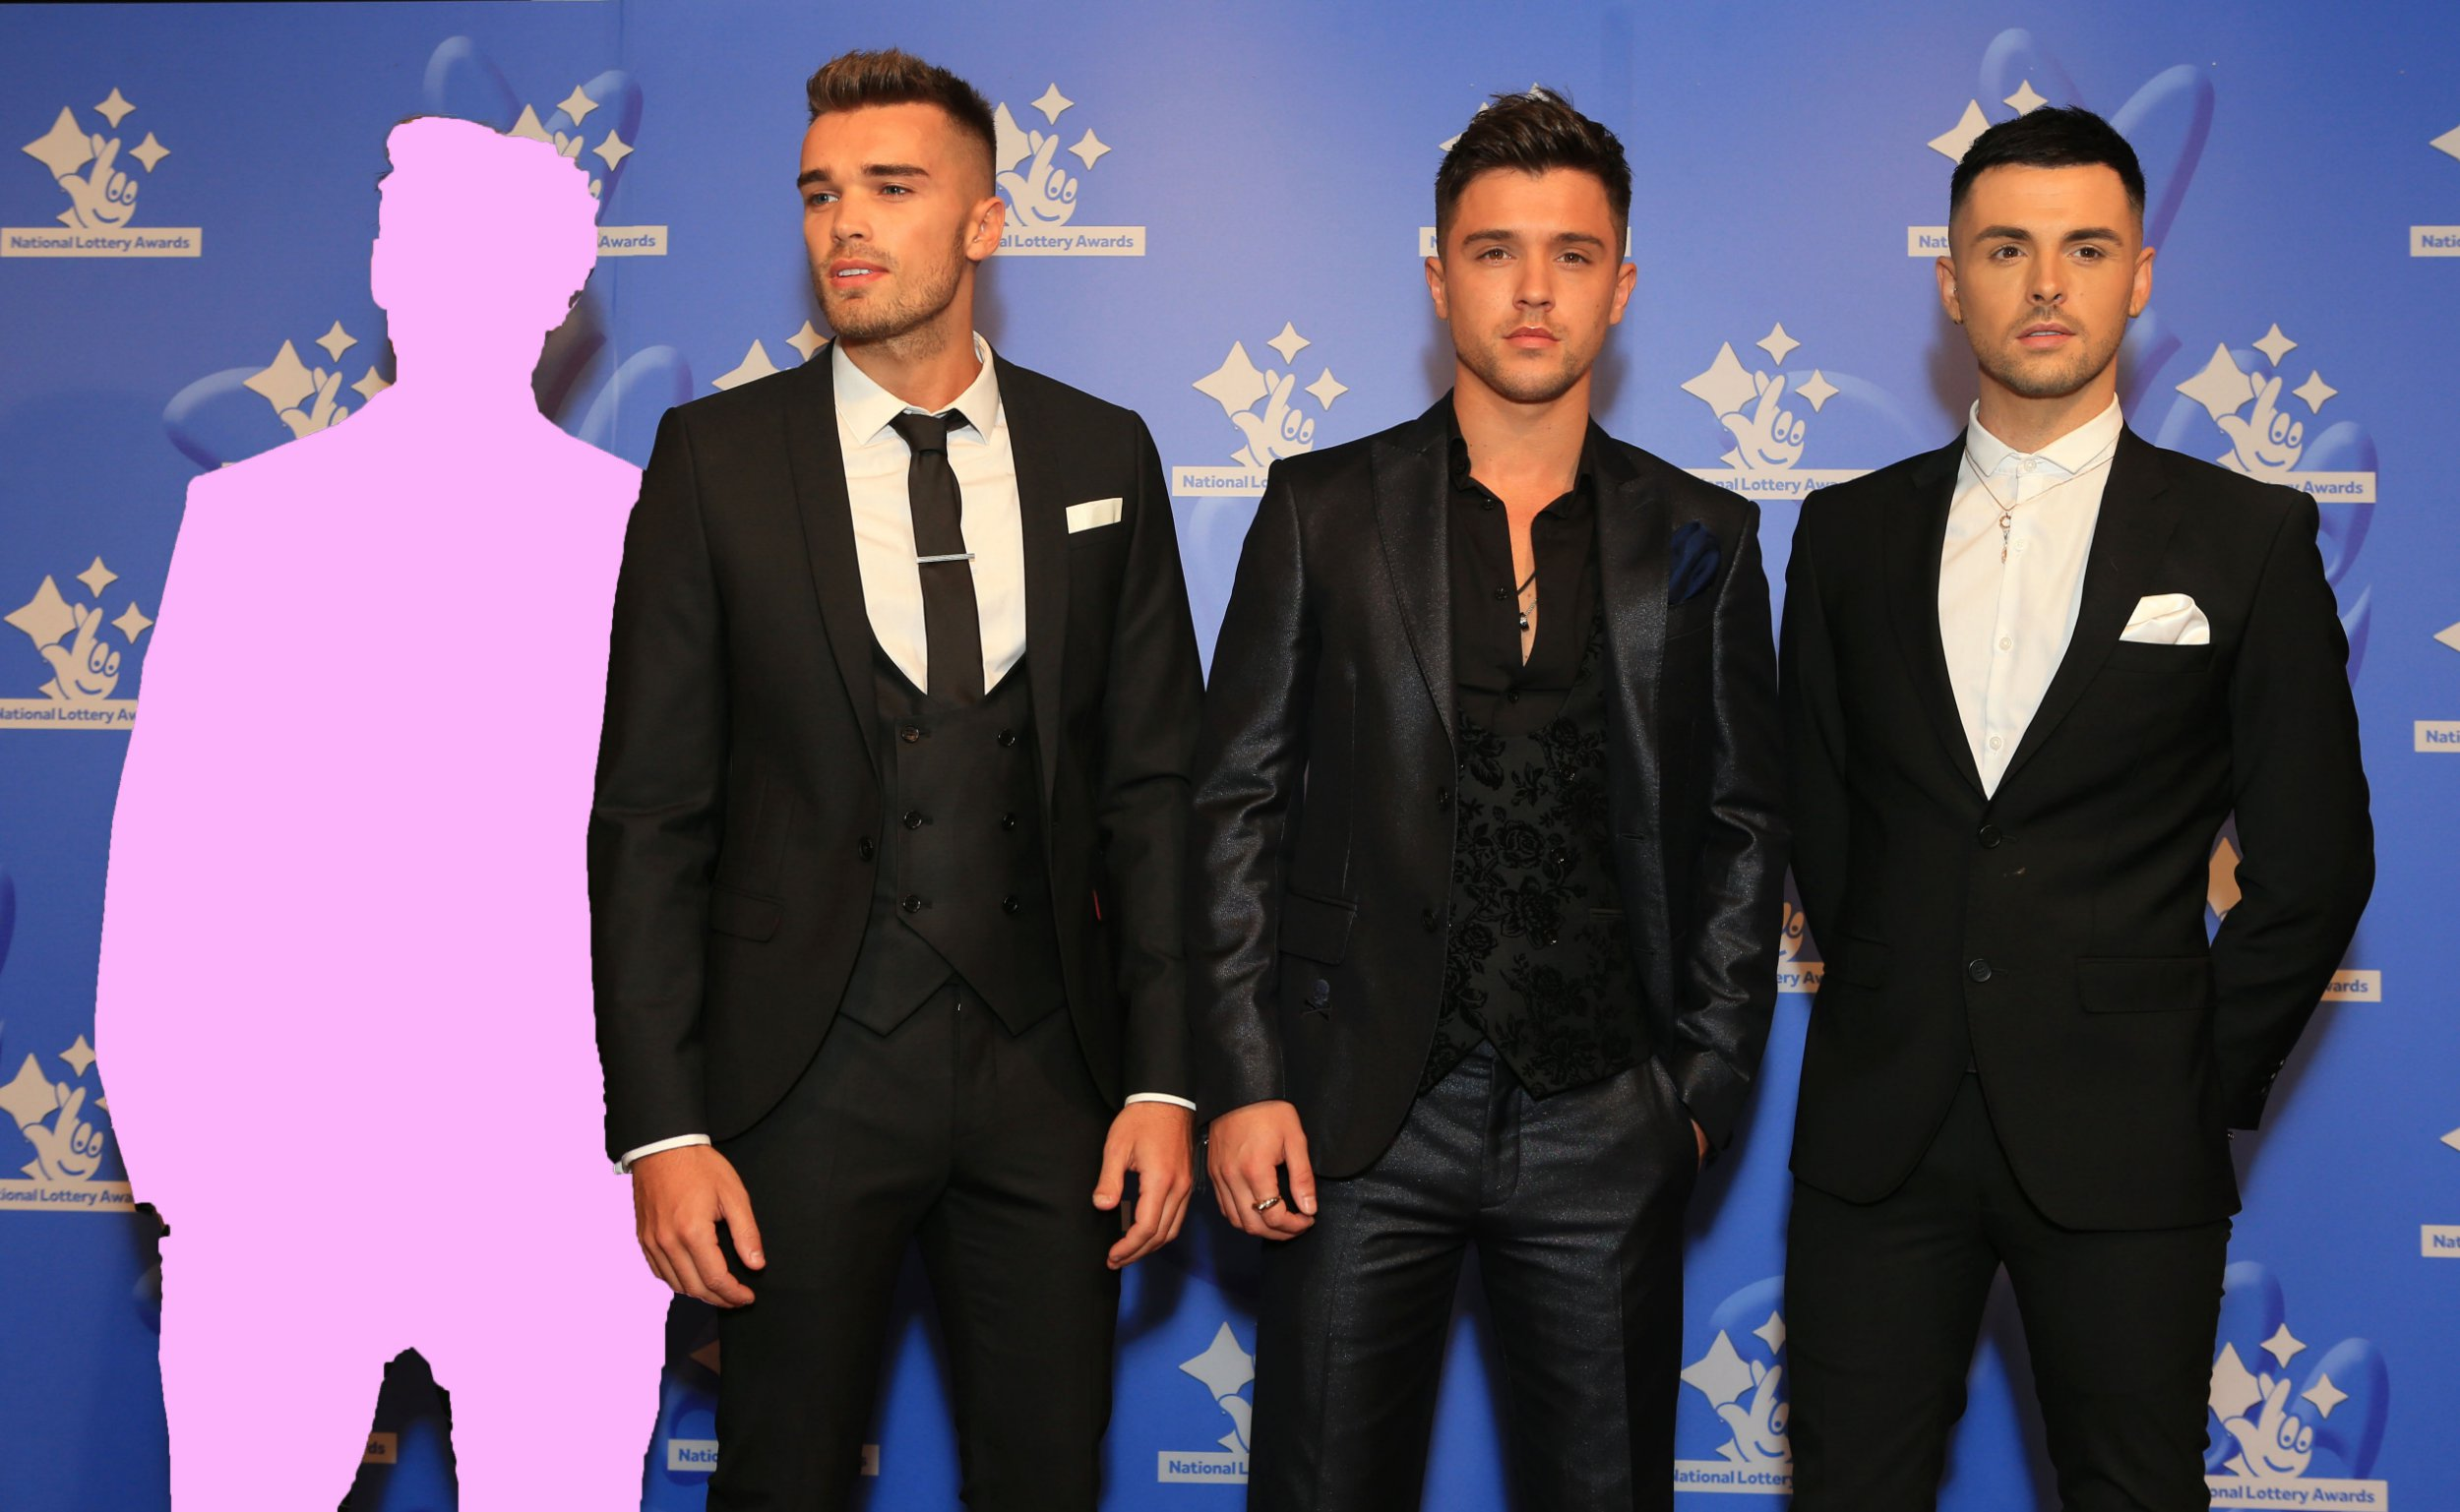 Union J no longer united as Casey Johnson 'axed' by management